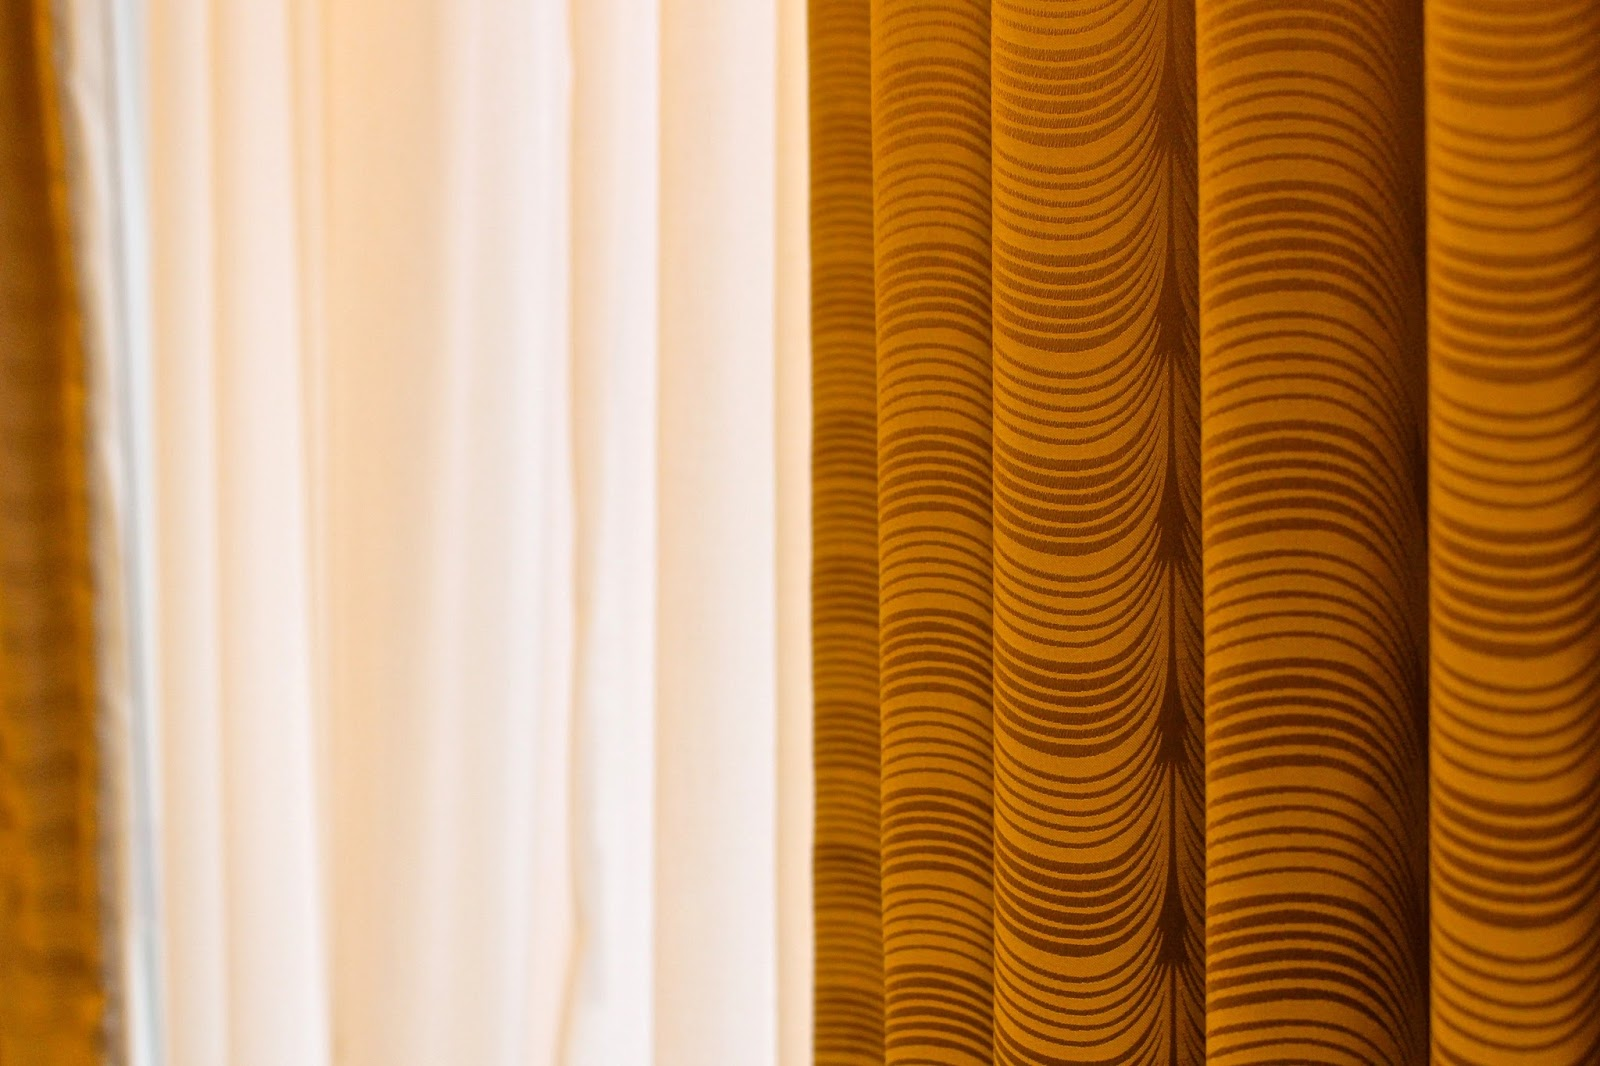 The Beaumont hotel curtains